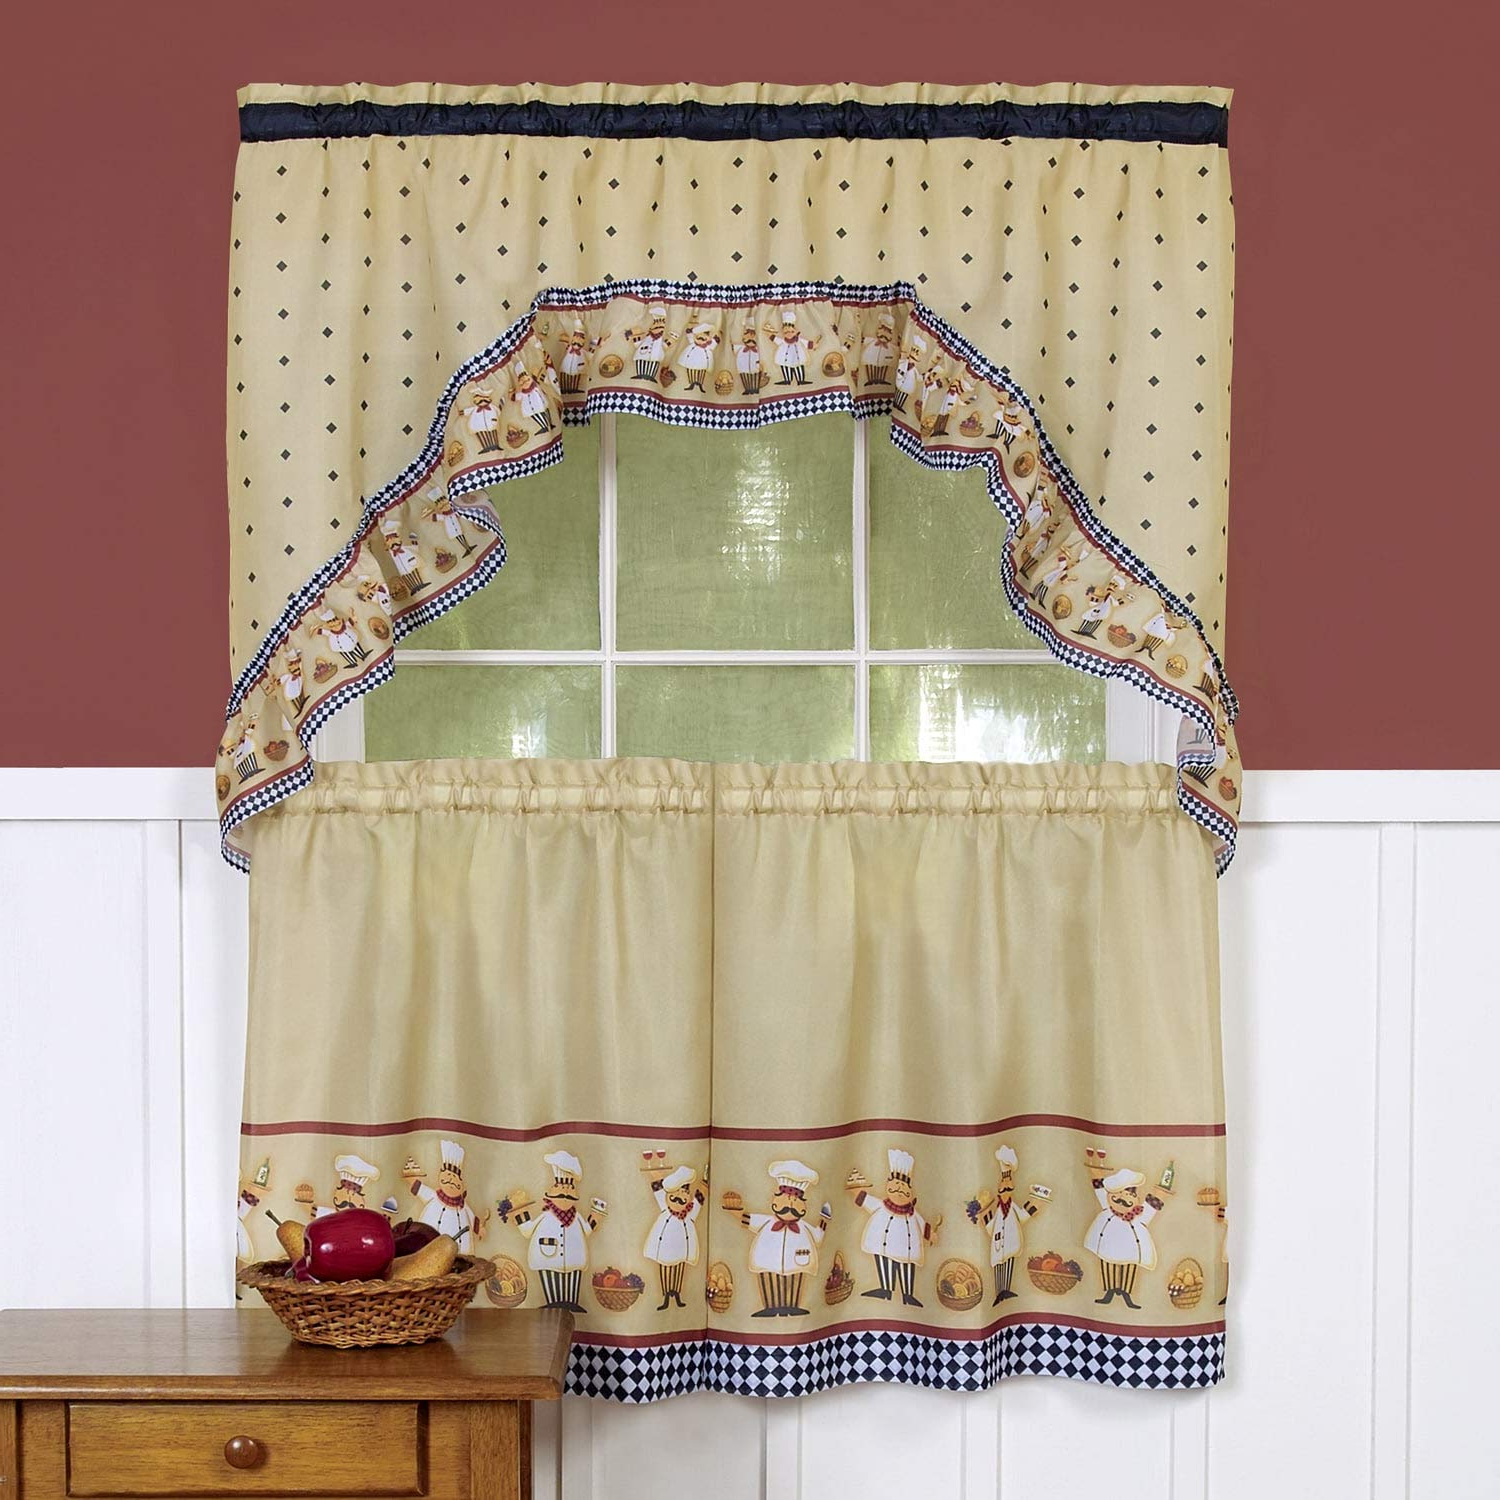 2021 Traditional Two Piece Tailored Tier And Valance Window Curtains Pertaining To Bed Bath N More Traditional Two Piece Tailored Tier And Swag Window  Curtains Set With Happy Chef Print – 36 Inch (View 1 of 20)